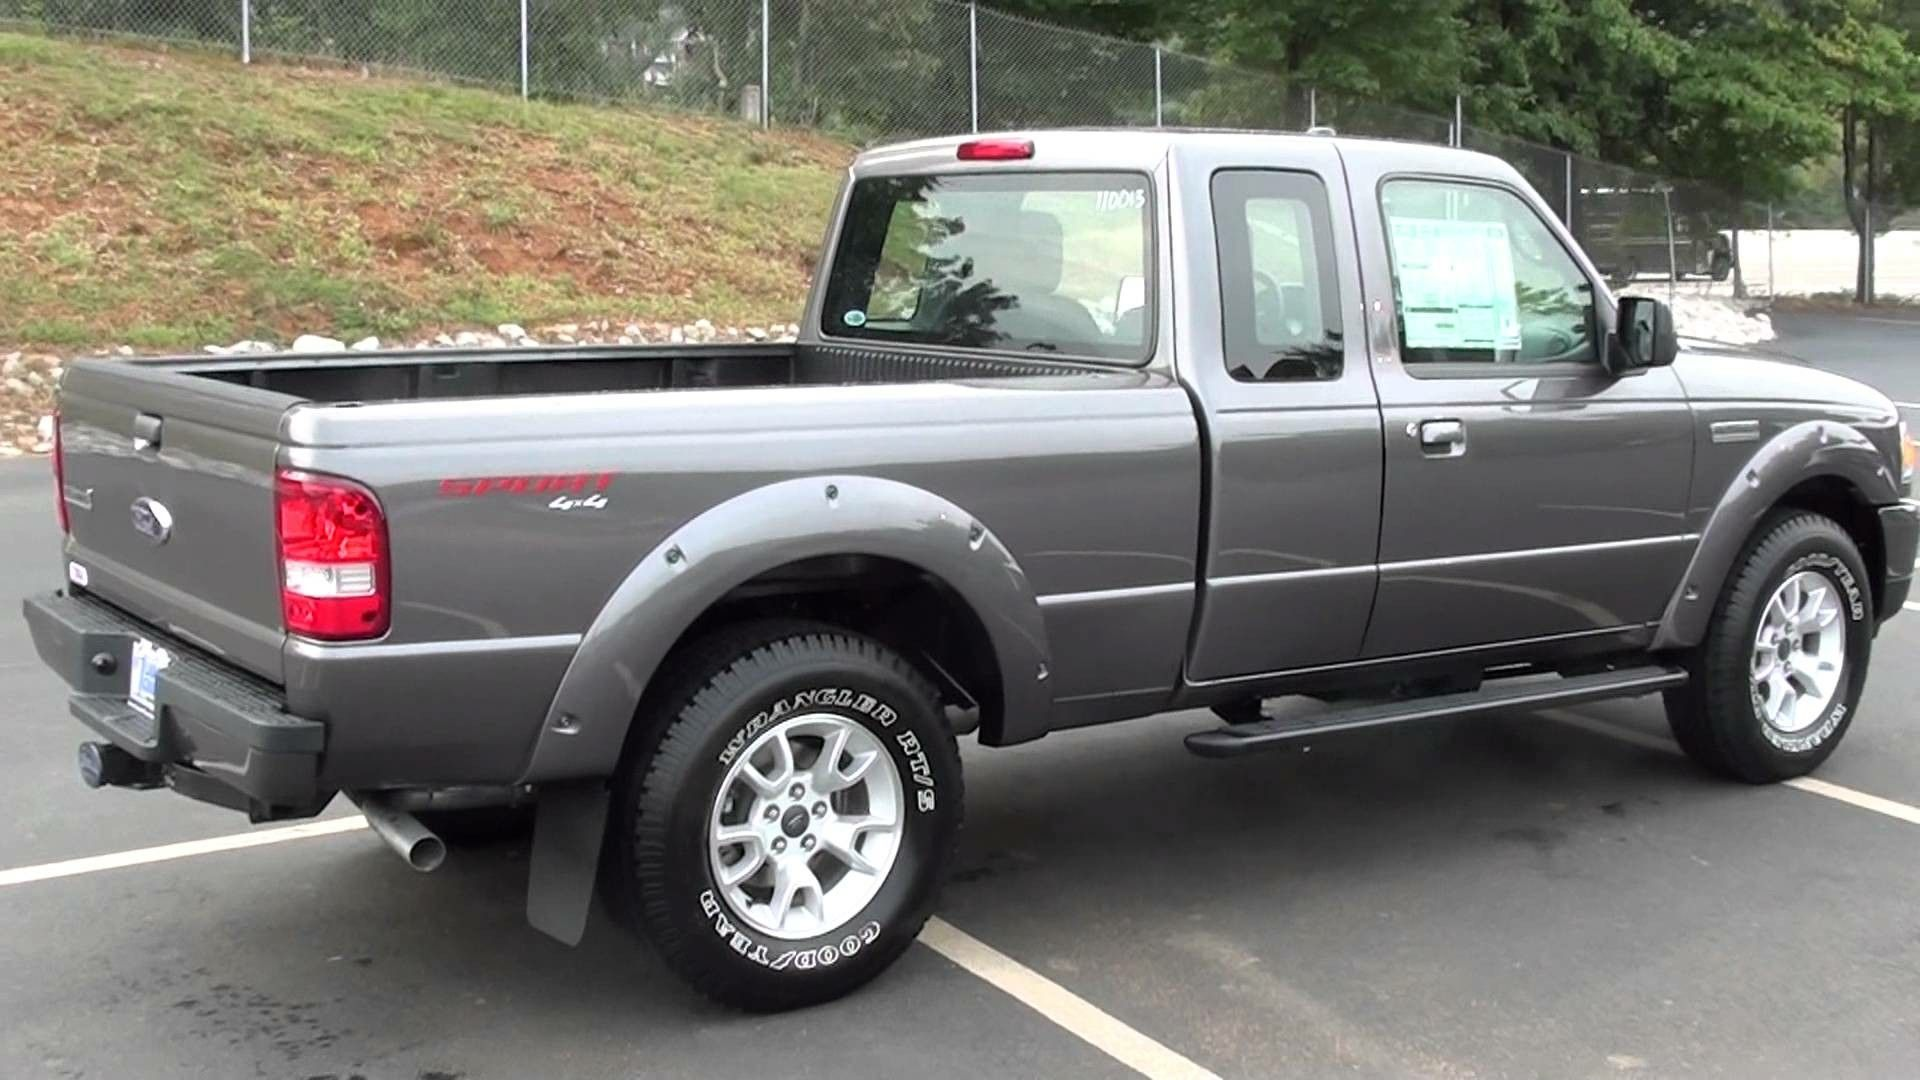 Pin By Wolf Phase On Cars Ford Ranger For Sale Ford Ranger Ranger